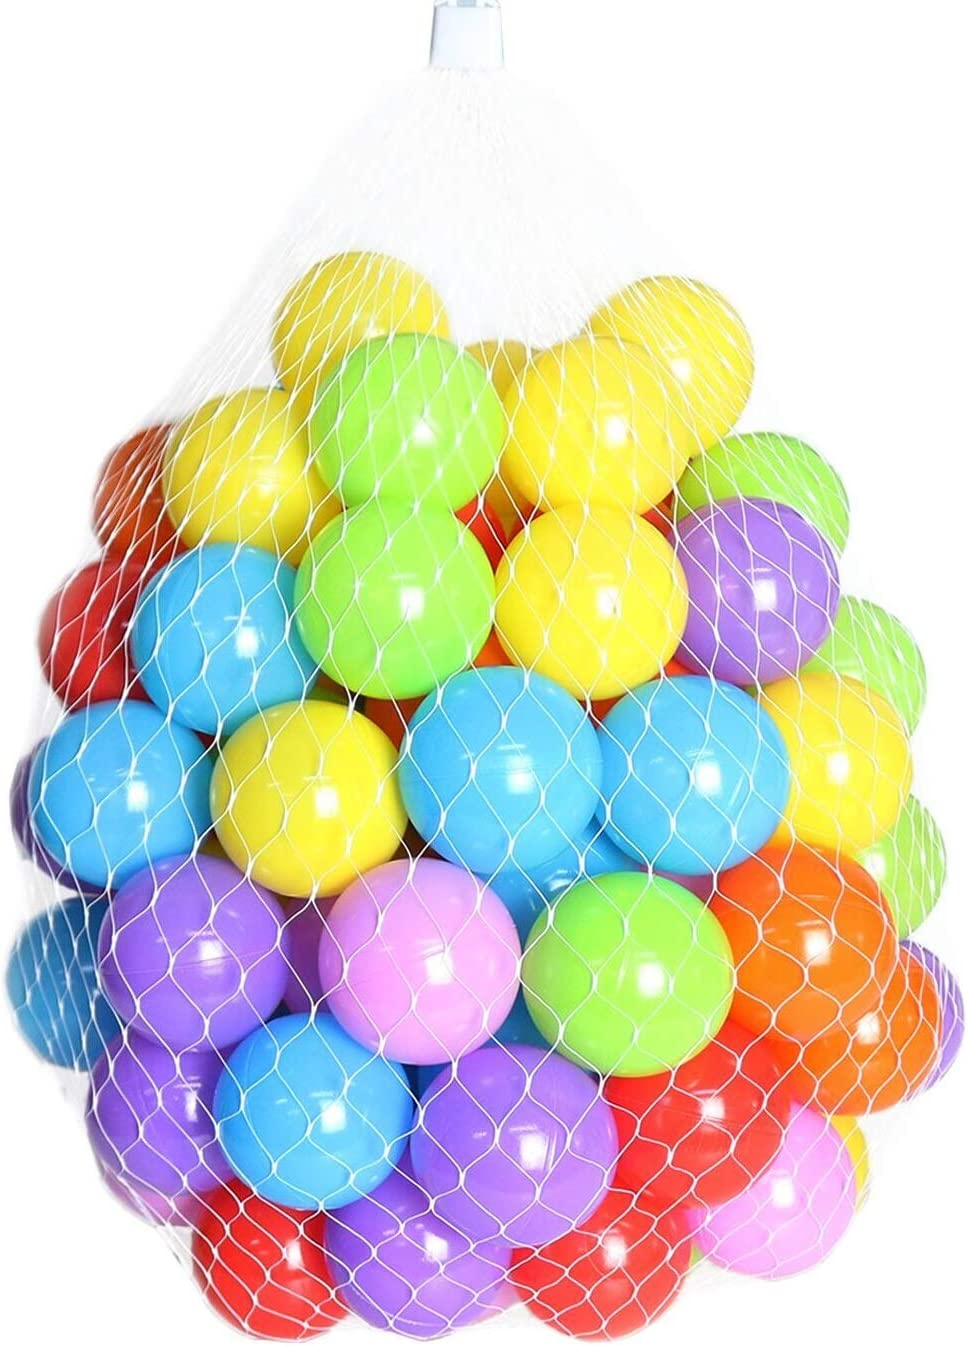 Ranking integrated 1st place Zmarthumb - Pack of 100 Balls BPA Colorful 2.1-Inch Free Crush Lowest price challenge